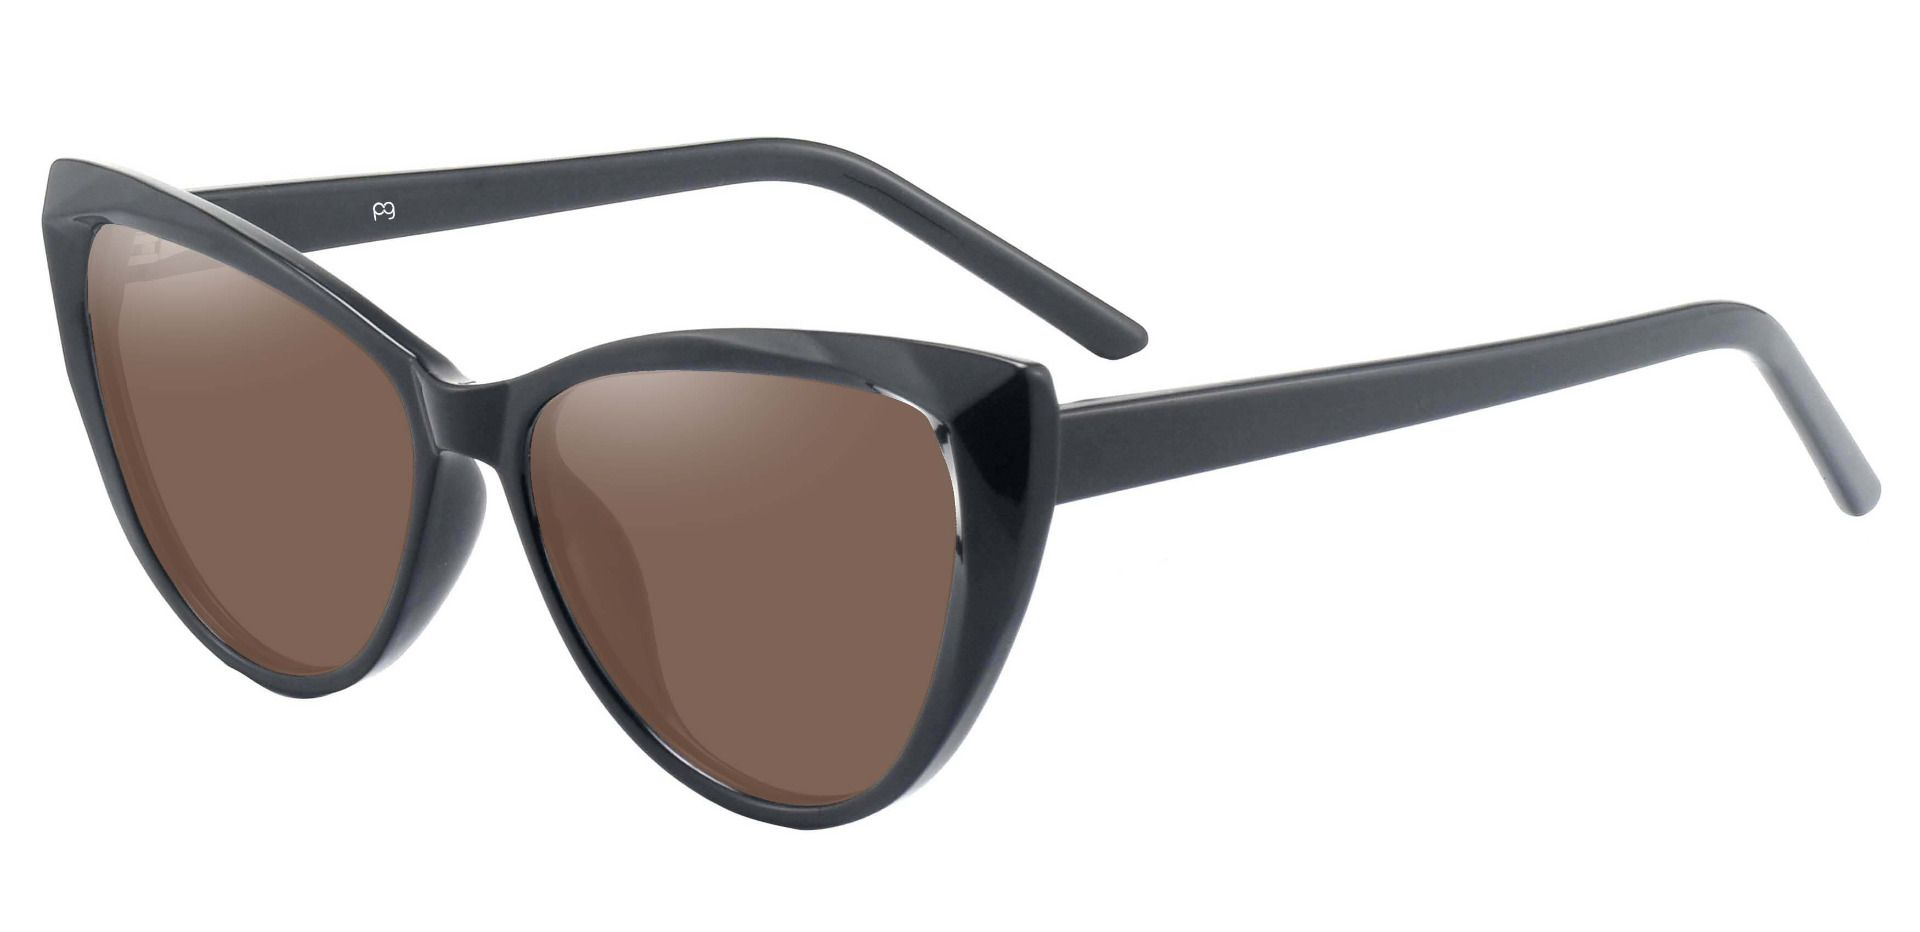 Ireland Cat Eye Non-Rx Sunglasses - Black Frame With Brown Lenses